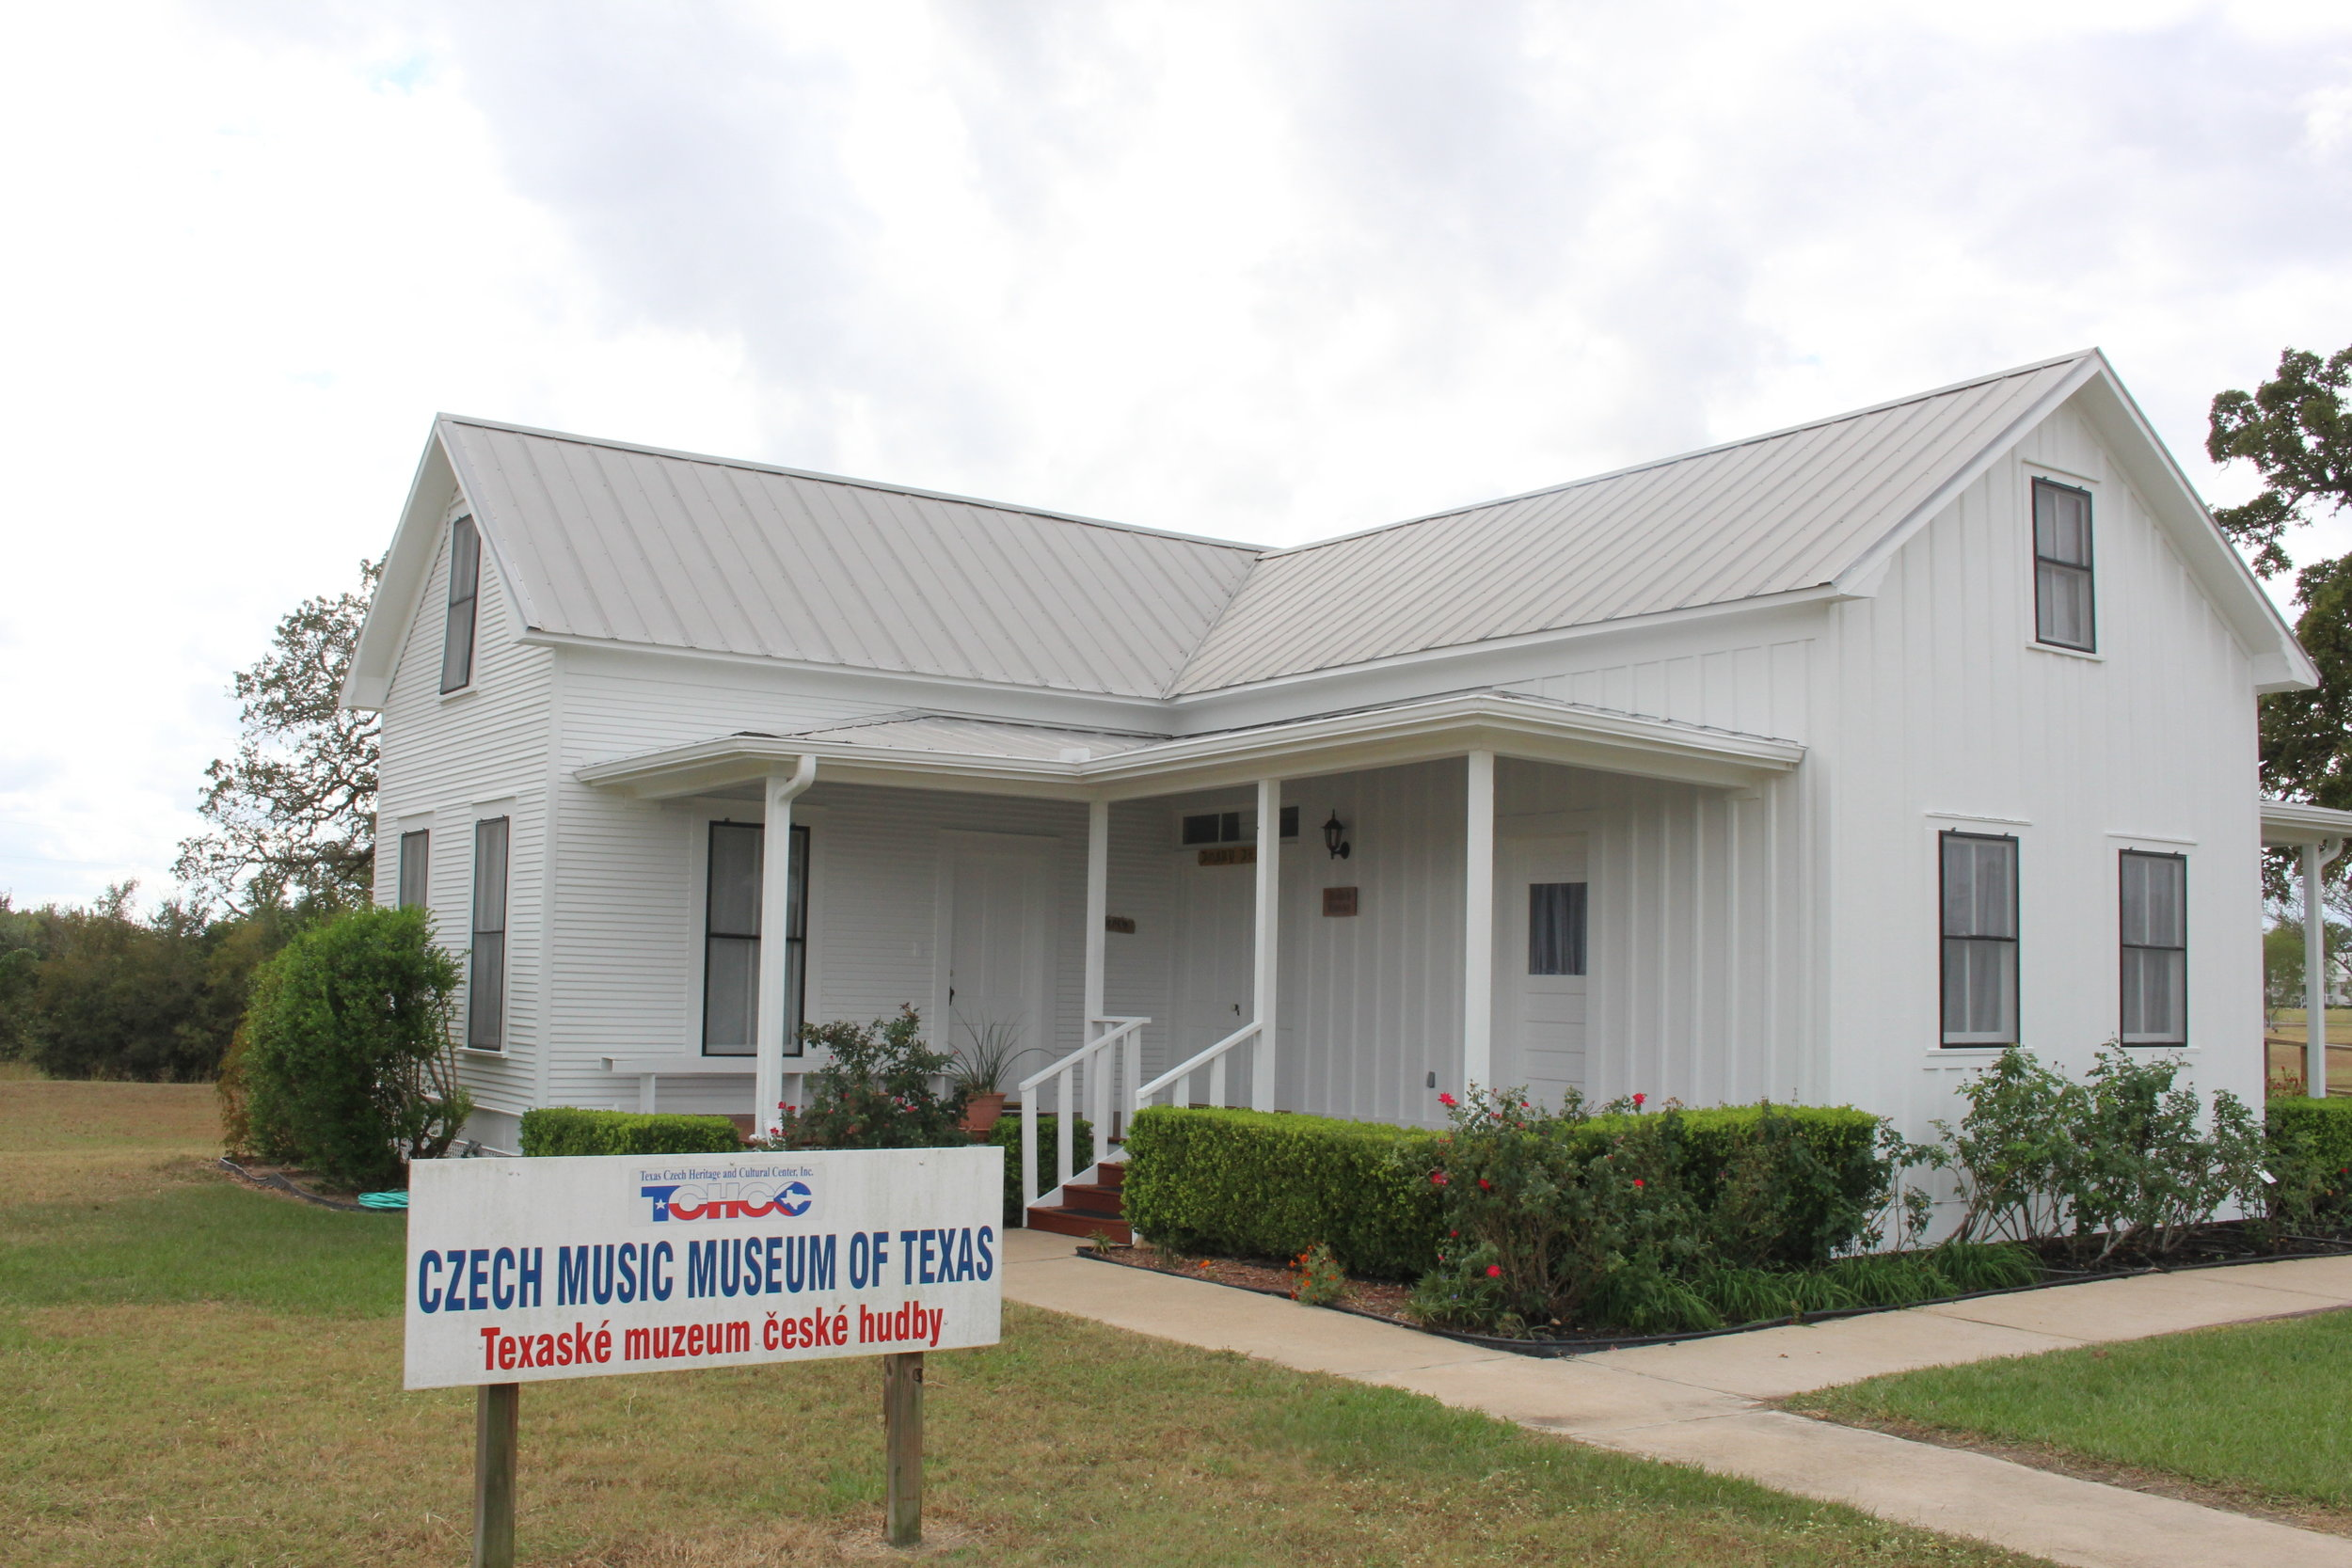 Development of TCHCC began when the Kalich House, restored by volunteers, became the first TCHCC Visitors' Center. This historic 1890s Texas-Czech farmhouse was donated by Peggy Kalich of Schulenburg. The house was moved to the site on June 22, 2000 by Káňa Brothers, Inc. House Leveling and Moving and then transformed into the Visitors' Center, which temporarily housed the office, gift shop, library, and display area.  The restoration efforts took approximately 3,109 hours with some 80 volunteers ranging in age from 2 to 80. Major restoration of the roof and porches was done by Robert Slovak Construction and volunteers from Ennis. It served as the Visitors' Center until 2009 when the main building was completed.  It is now TCHCC's Czech Music Museum of Texas displaying music memorabilia in four musical genres: Classical Music of Czech Composers, Spiritual/Liturgical Music, Folk Music and Dance, and Polka/Czech Brass Music.